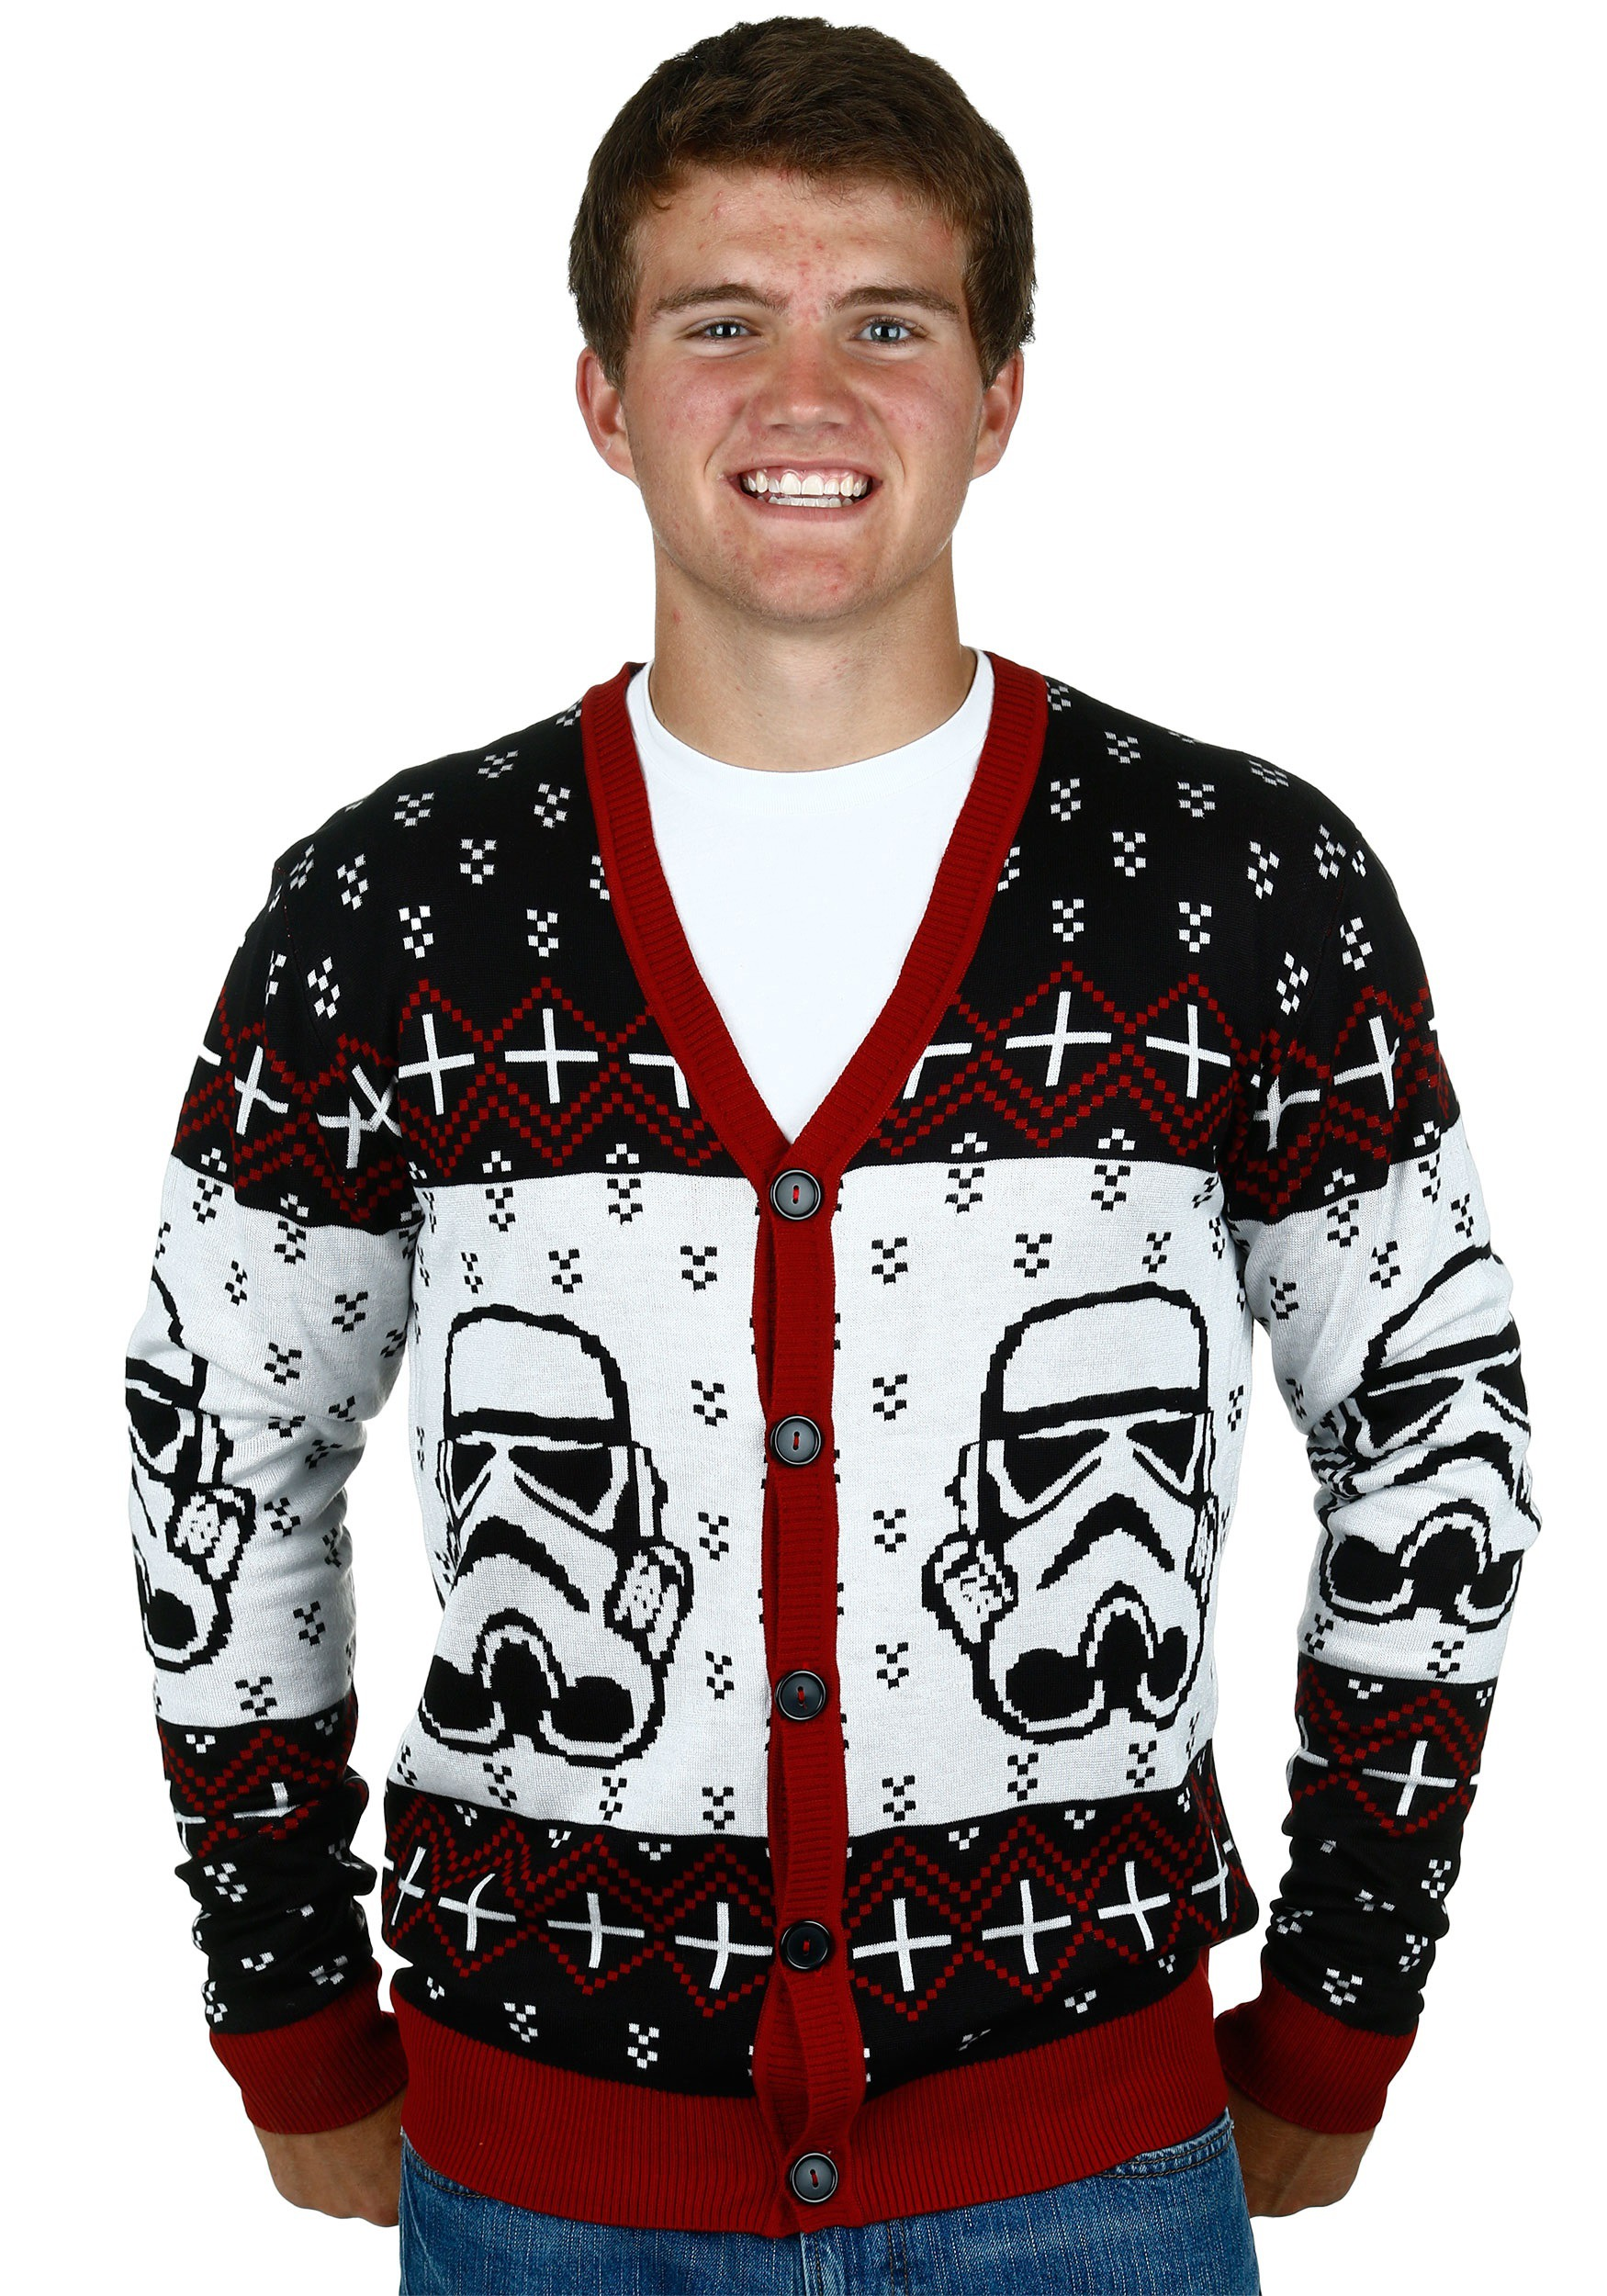 Star Wars Stormtrooper Men's Ugly Christmas Cardigan MFMSTW1543MAR1